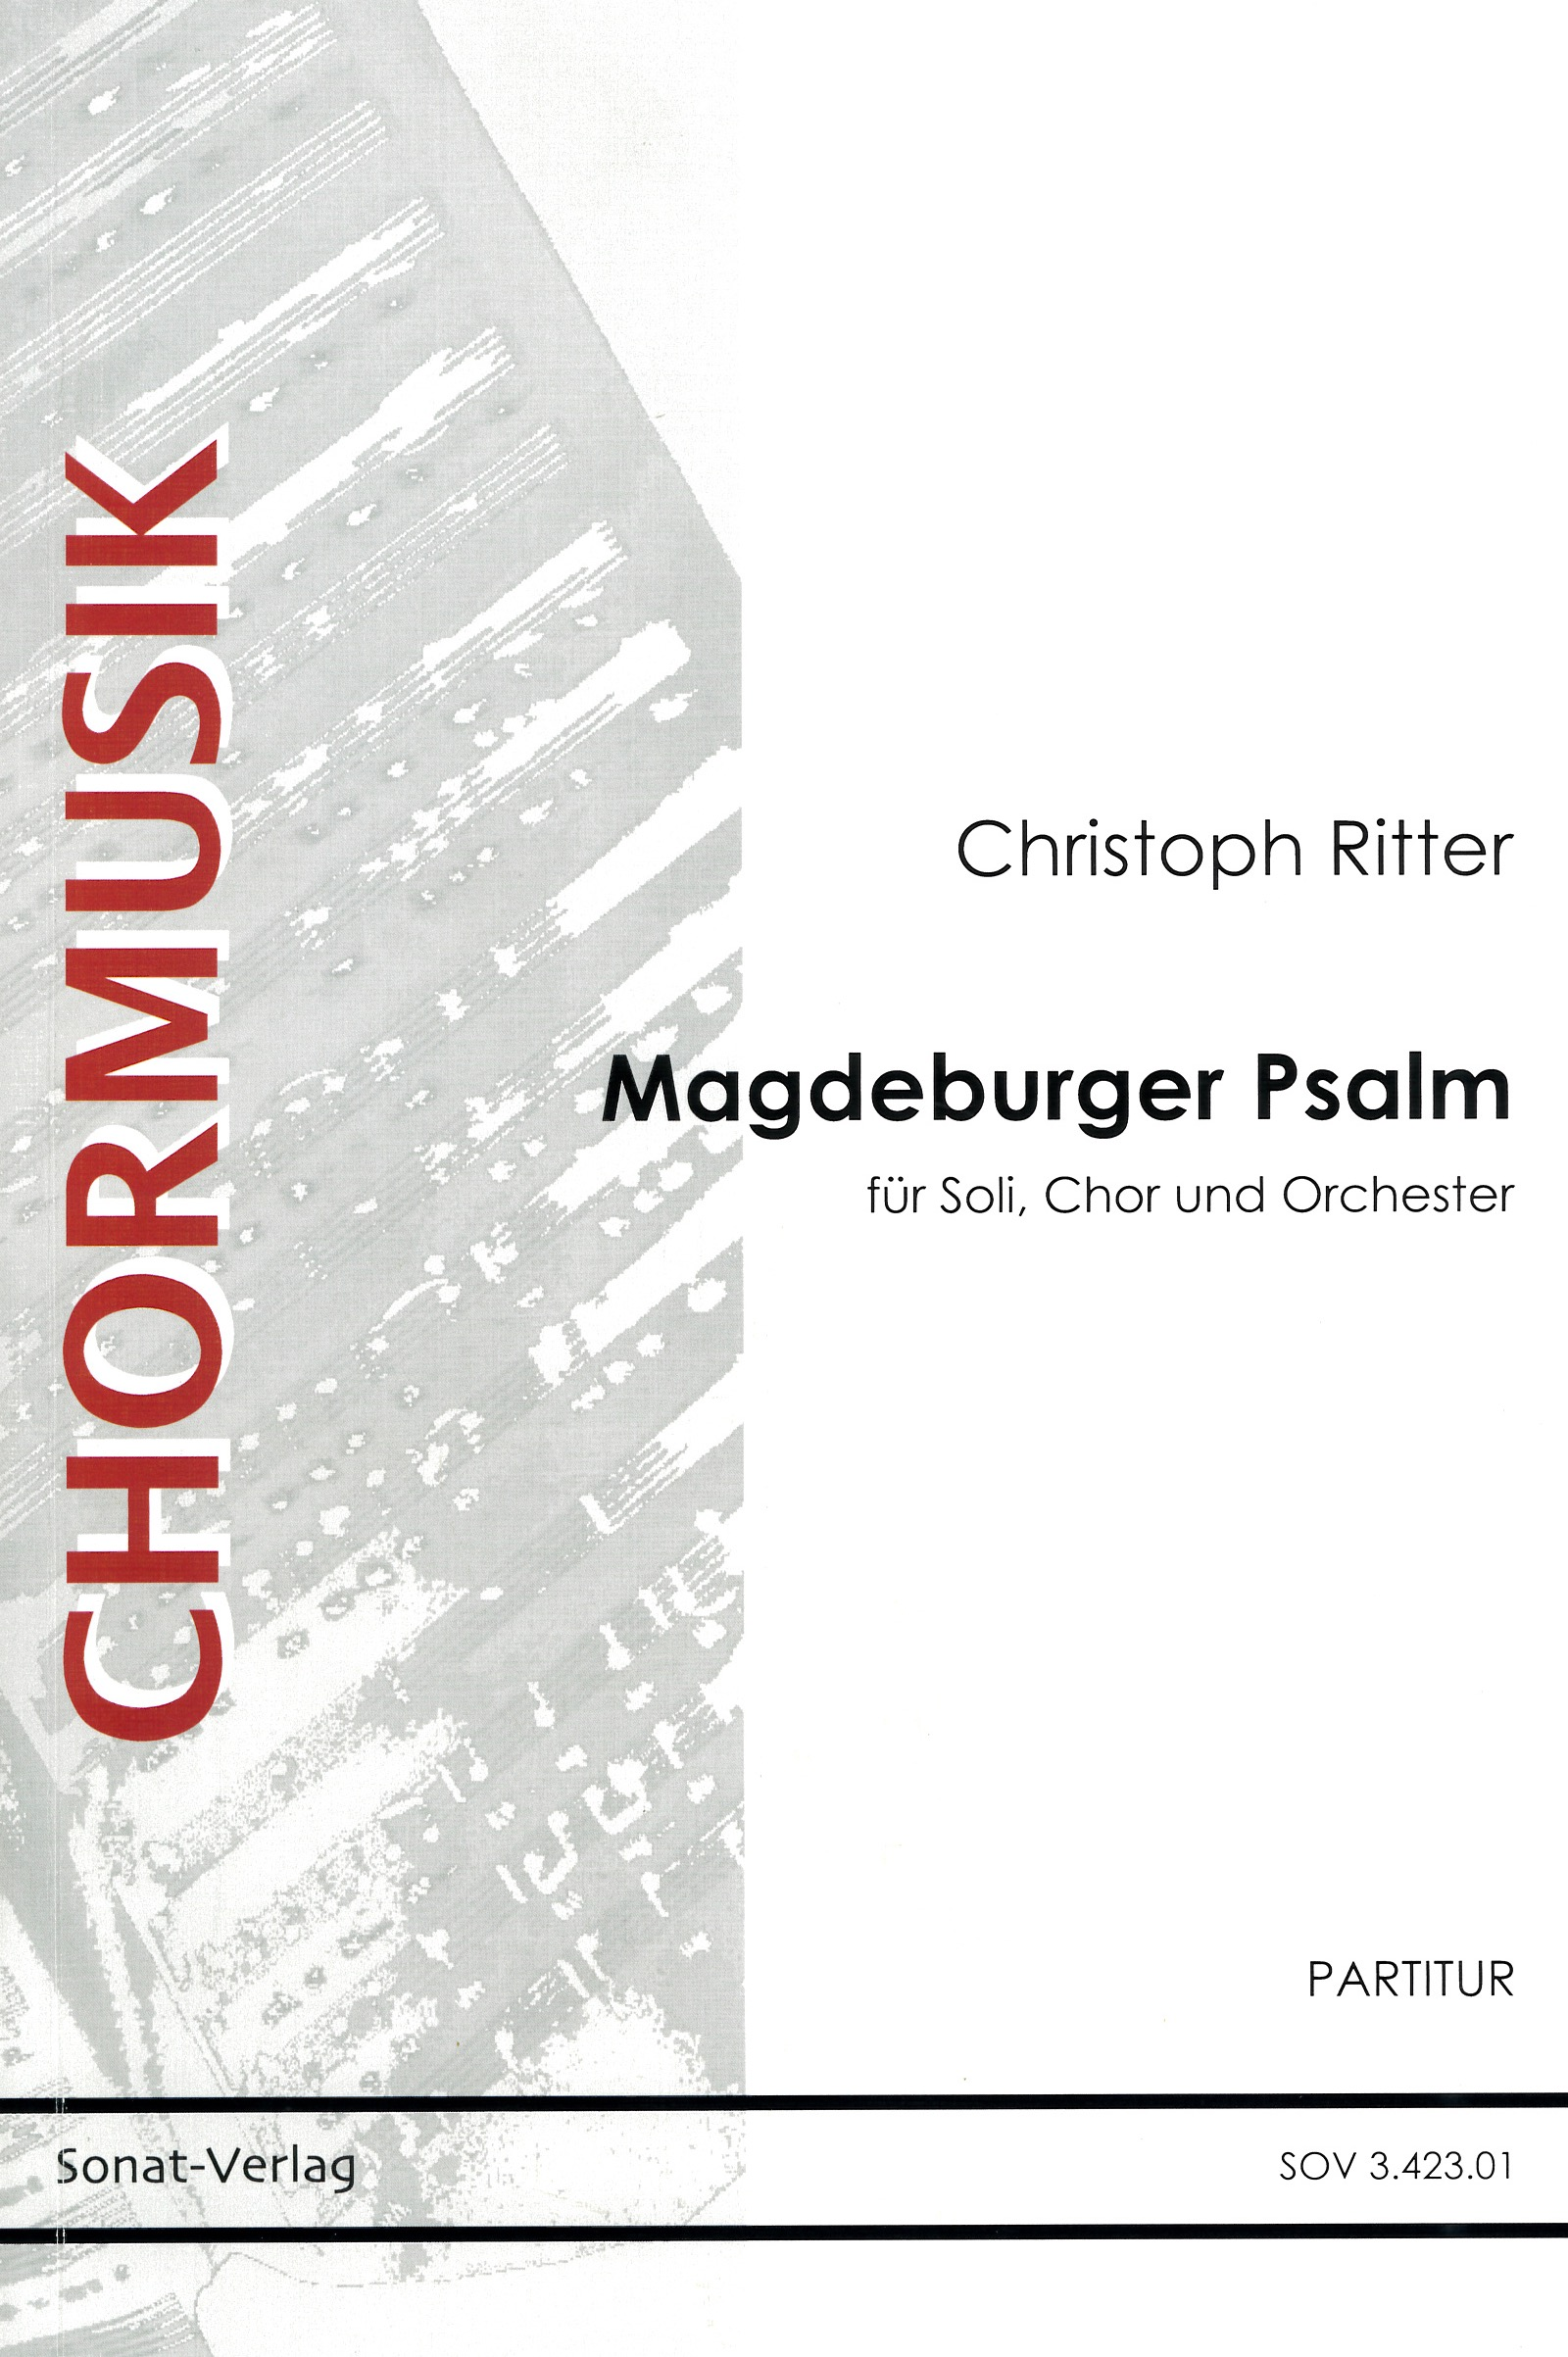 Magdeburger Psalm (PART)